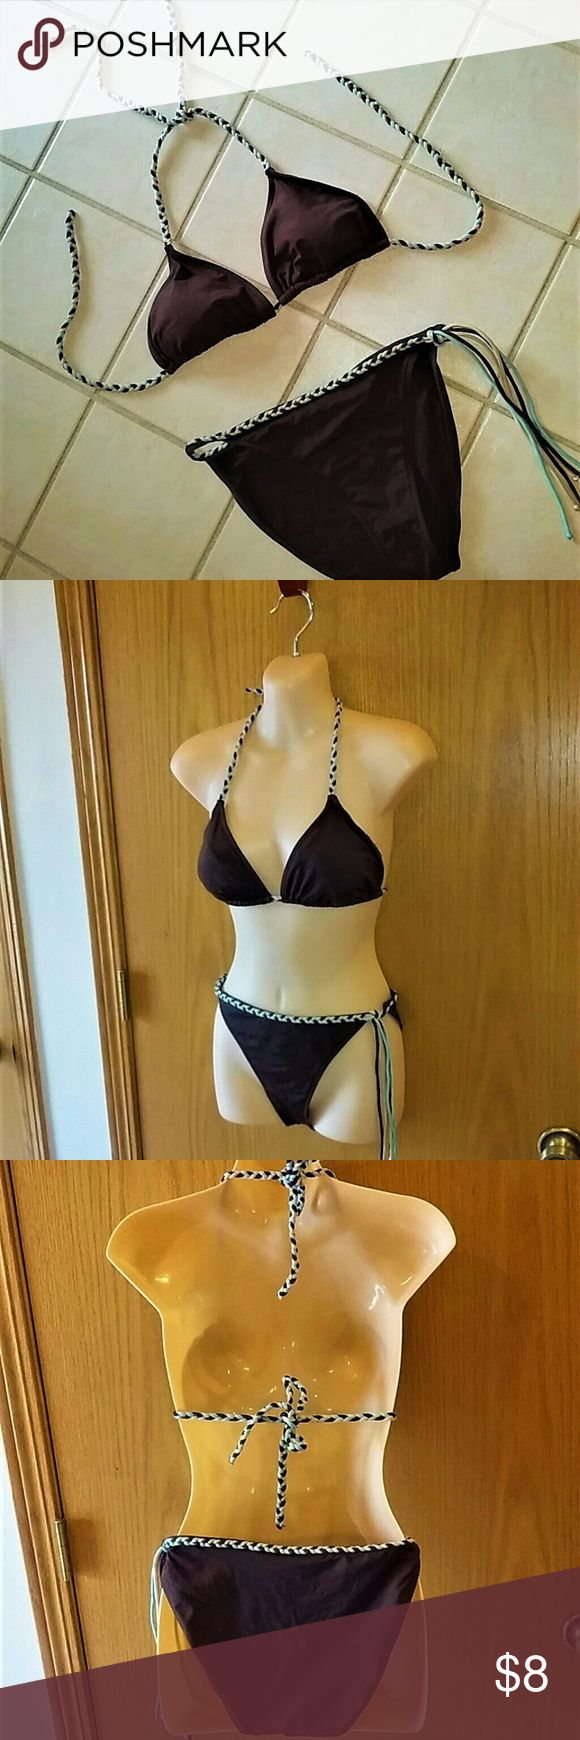 "No Boundaries Braided String Bikini SZ MEDIUM DESCRIPTION: Dark brown with blue, brown and cream braid/fringe. Very high cut bottom. Halter top with padded bra.  FABRIC CARE: Nylon spandex blend is hand washable. Has been laundered.  MEASUREMENTS: Bra cord stretches from 38-40"". Bottom cord stretches from 26-32"".  CONDITION: GUC with no stains or snags. No Boundaries Swim Bikinis"